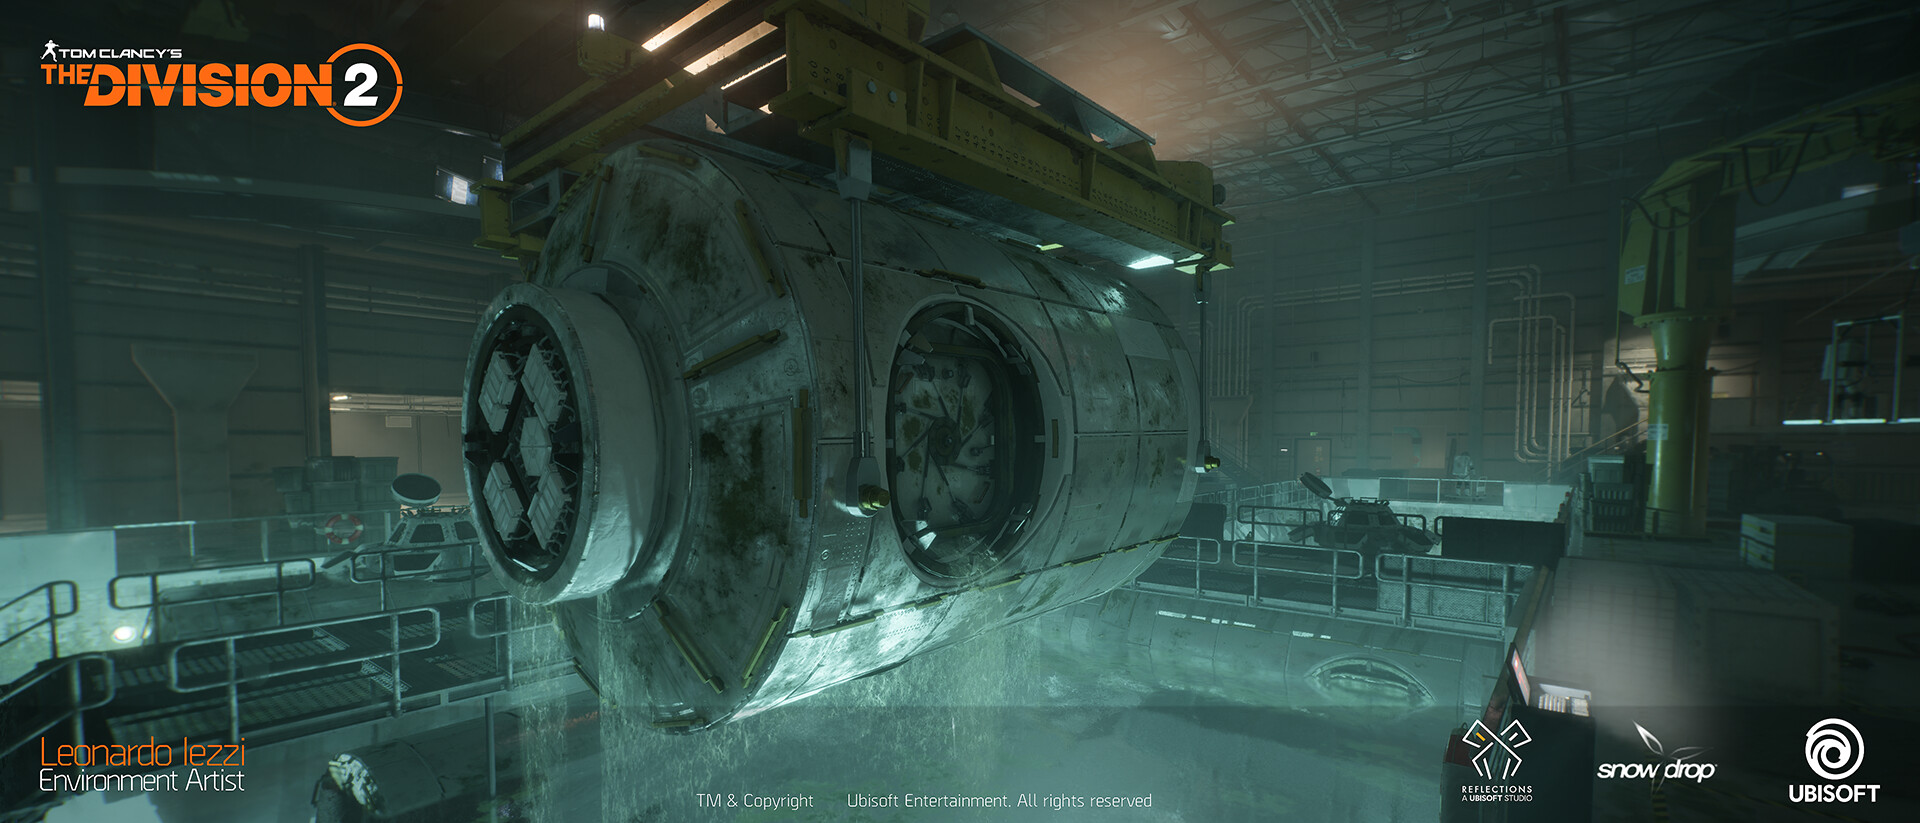 Leonardo iezzi leonardo iezzi the division 2 environment art 06 buoyancy 020 wide